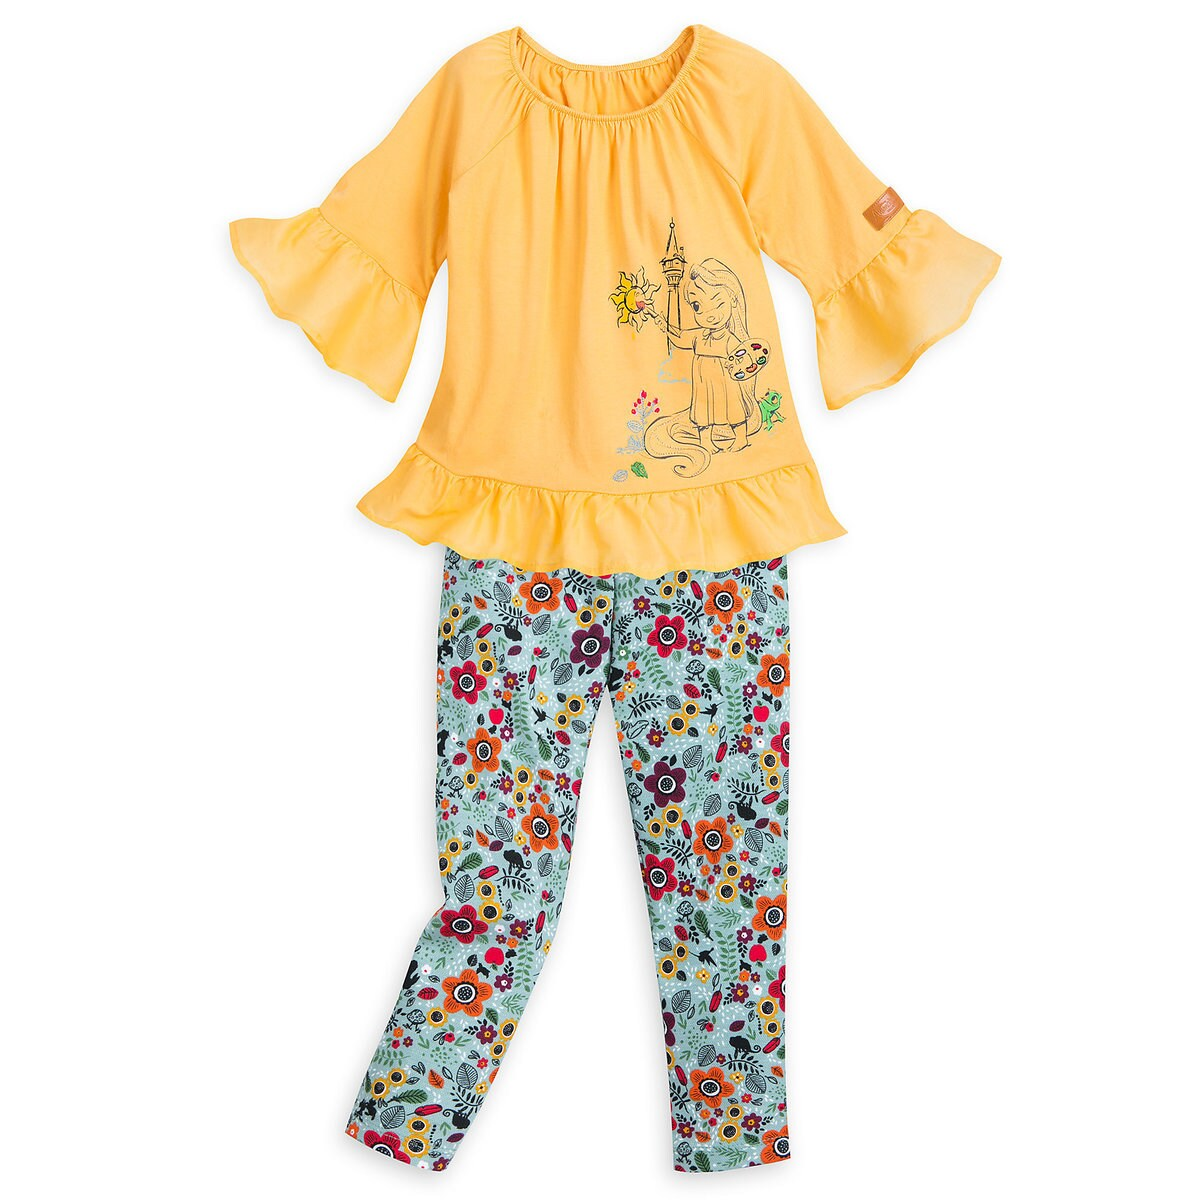 6adf11f84 Product Image of Disney Animators' Collection Tunic and Leggings Set for  Girls - Rapunzel #